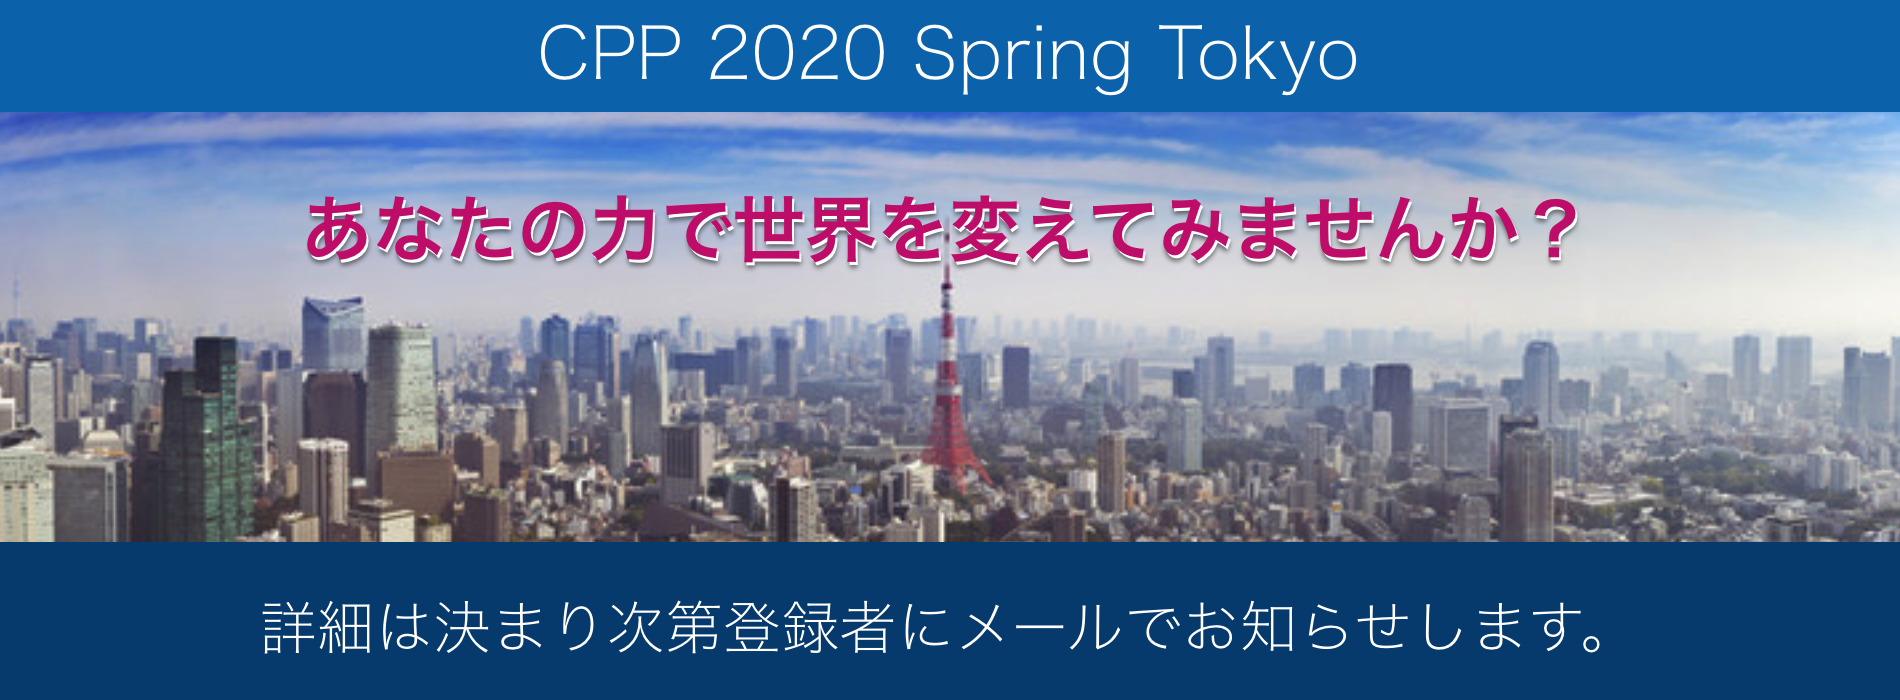 CPP2020spring